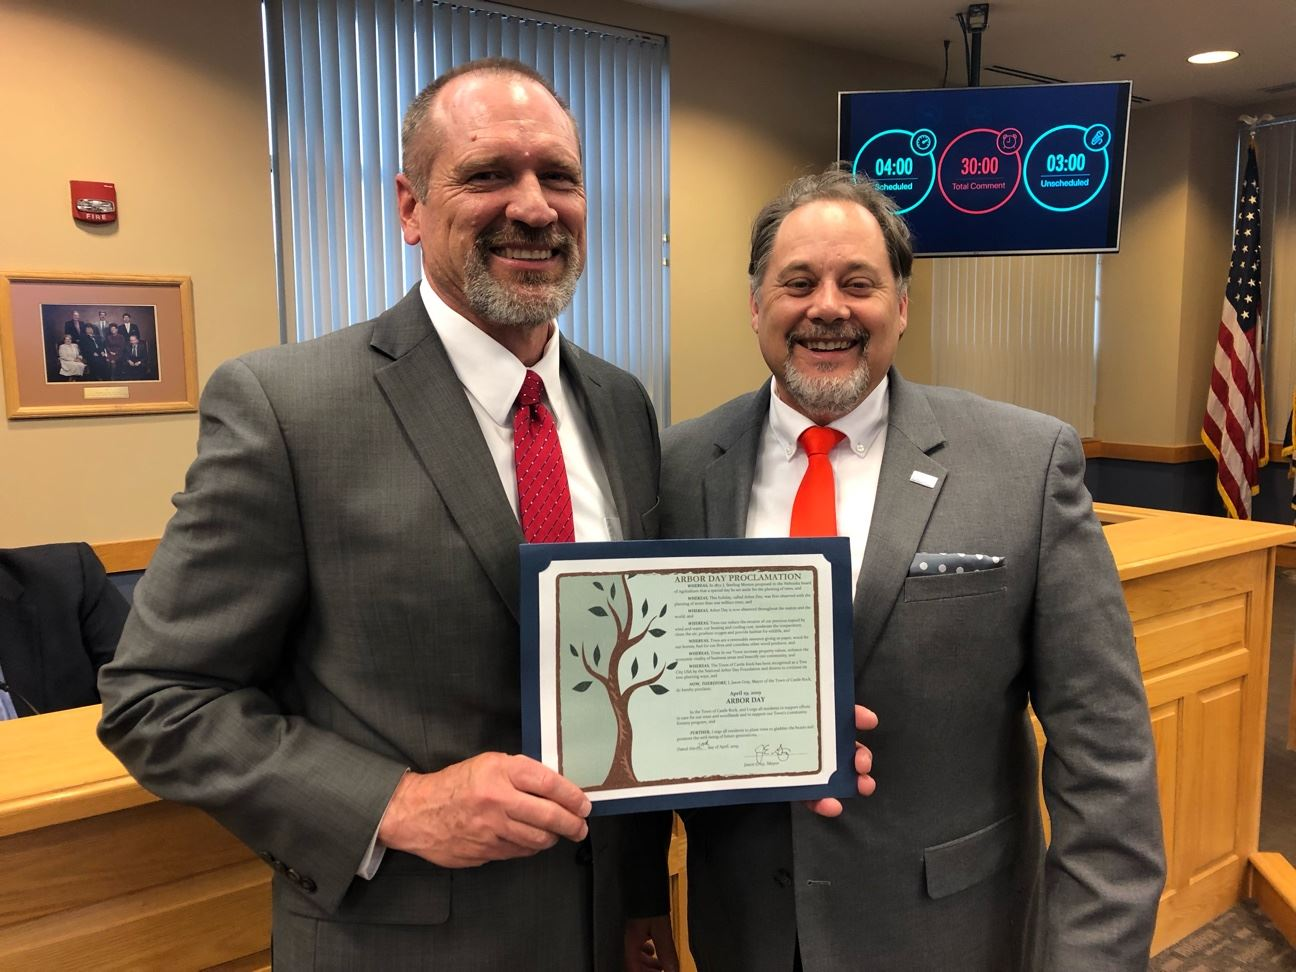 Proclamation Arbor Day 2019 with Parks and Recreation Director Jeff Brauer and Mayor Jason Gray